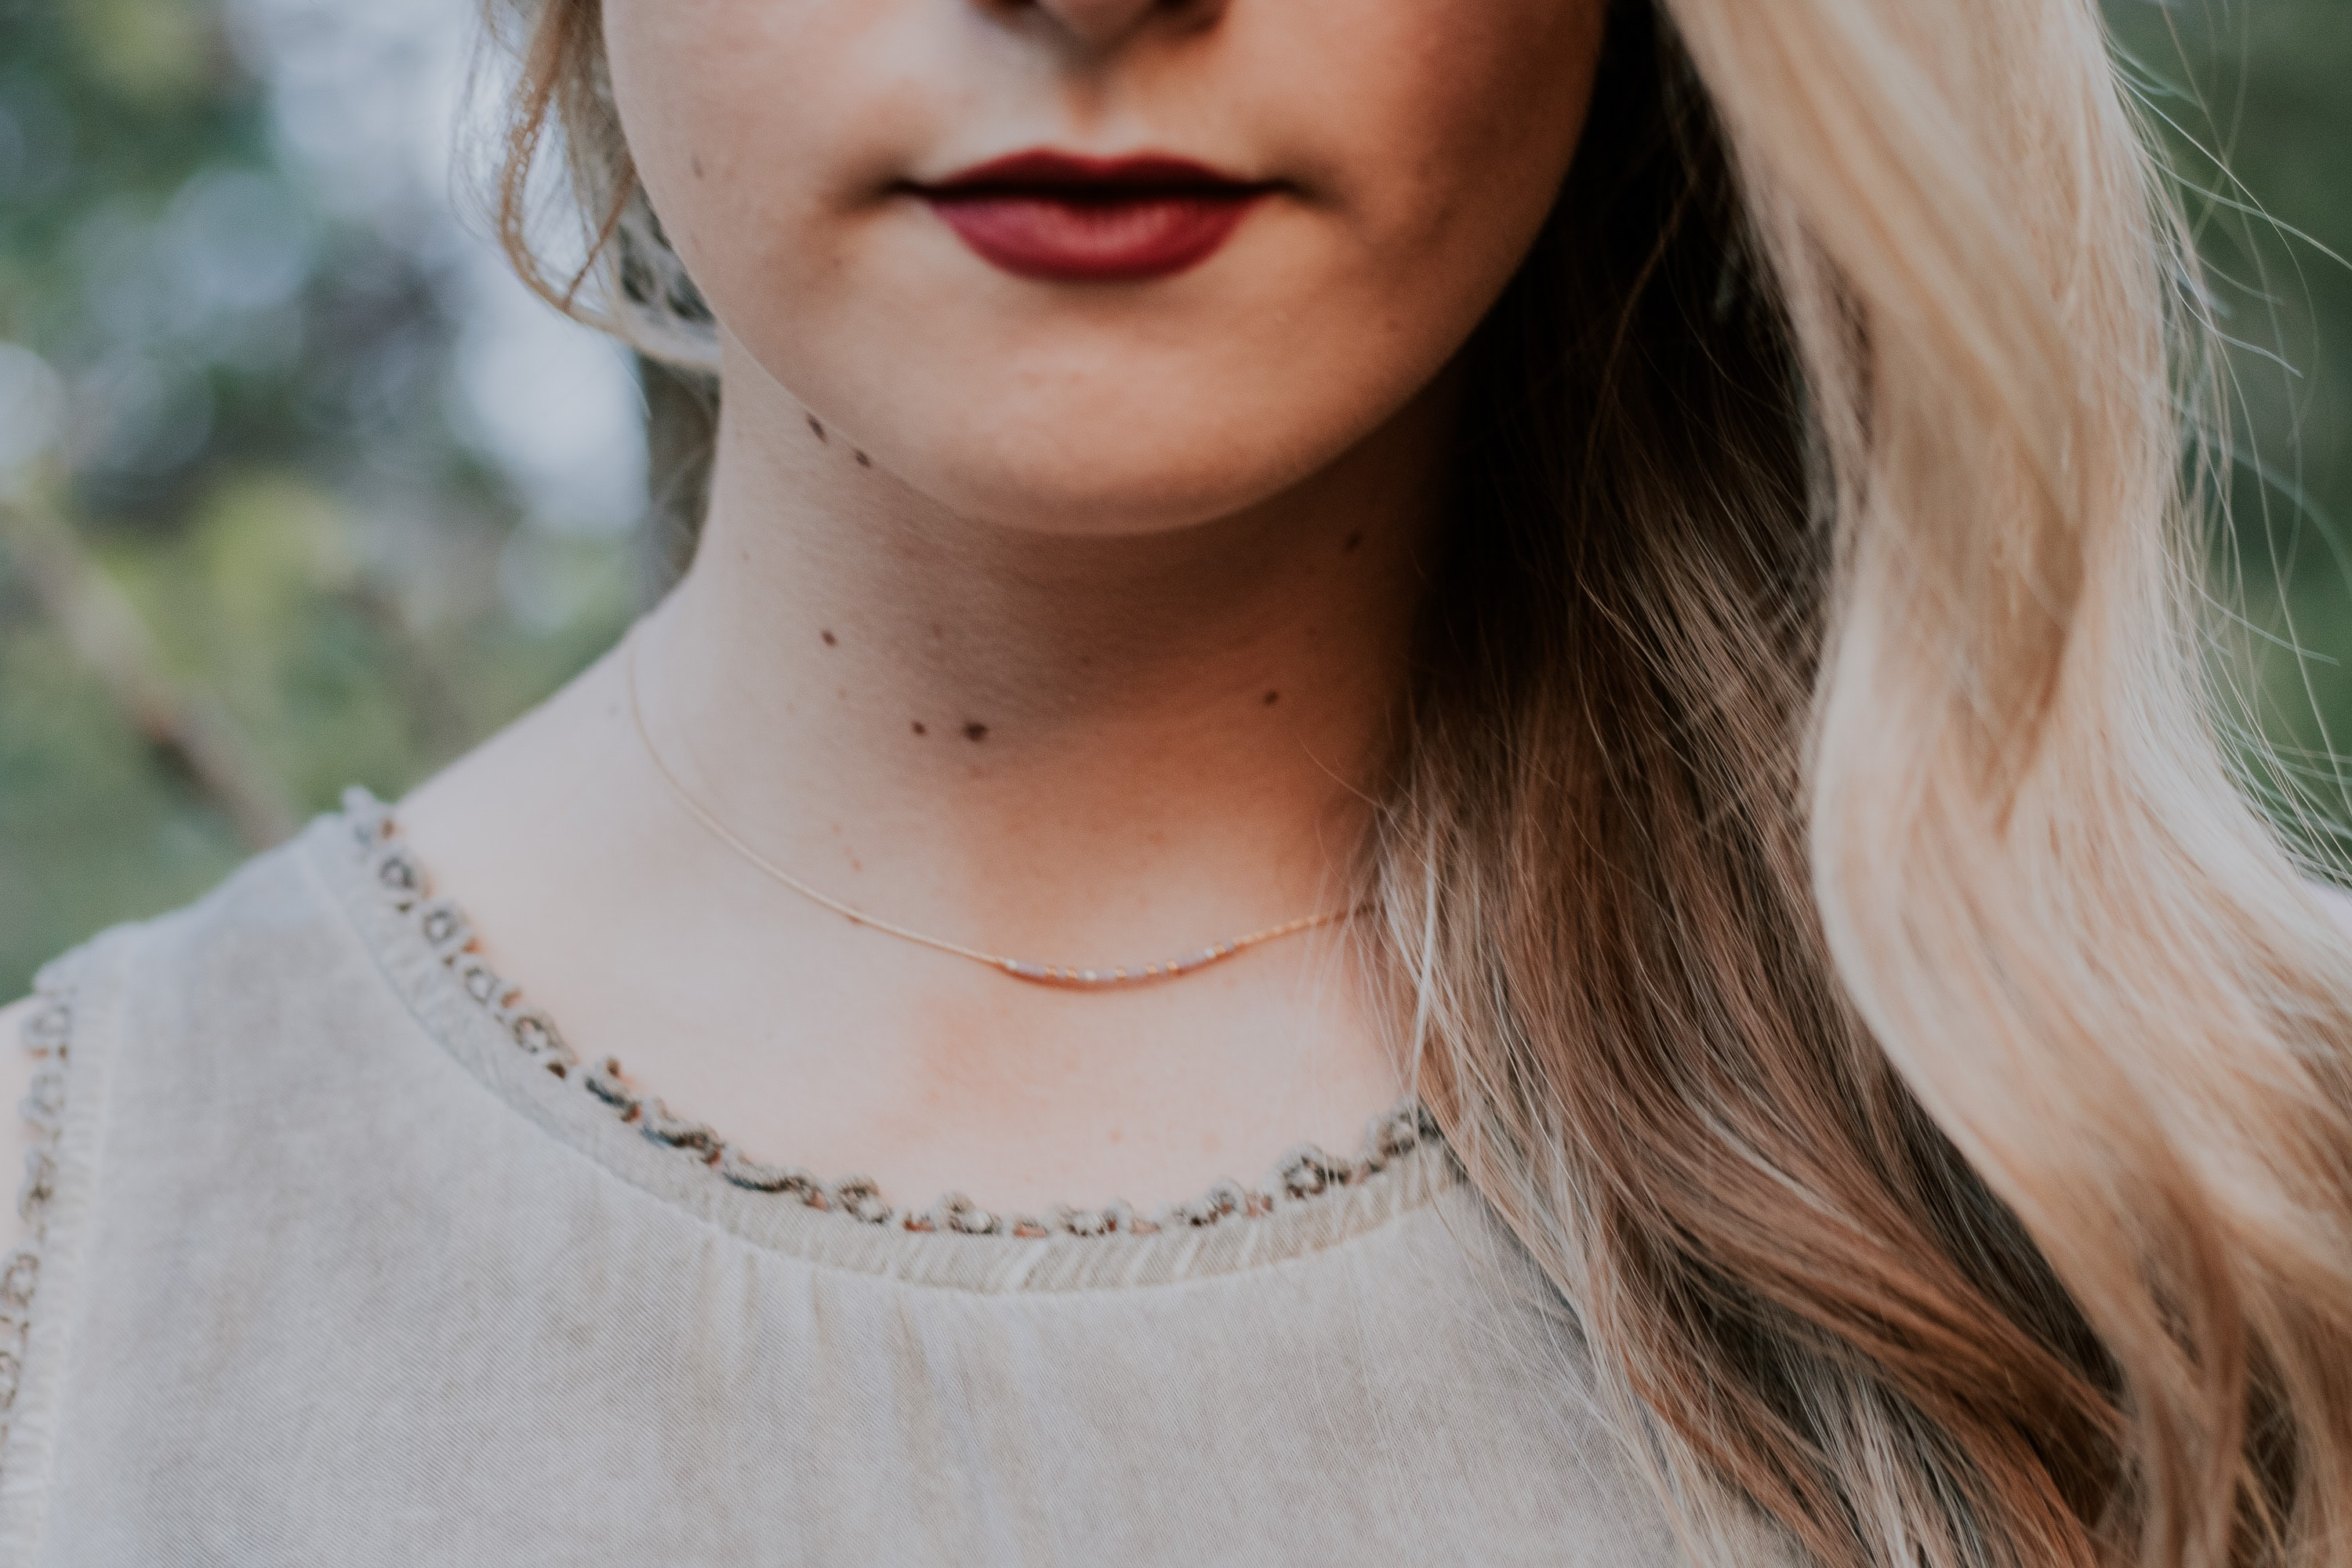 A close-up of a woman's chin. She wears a necklace and dark red lipstick.